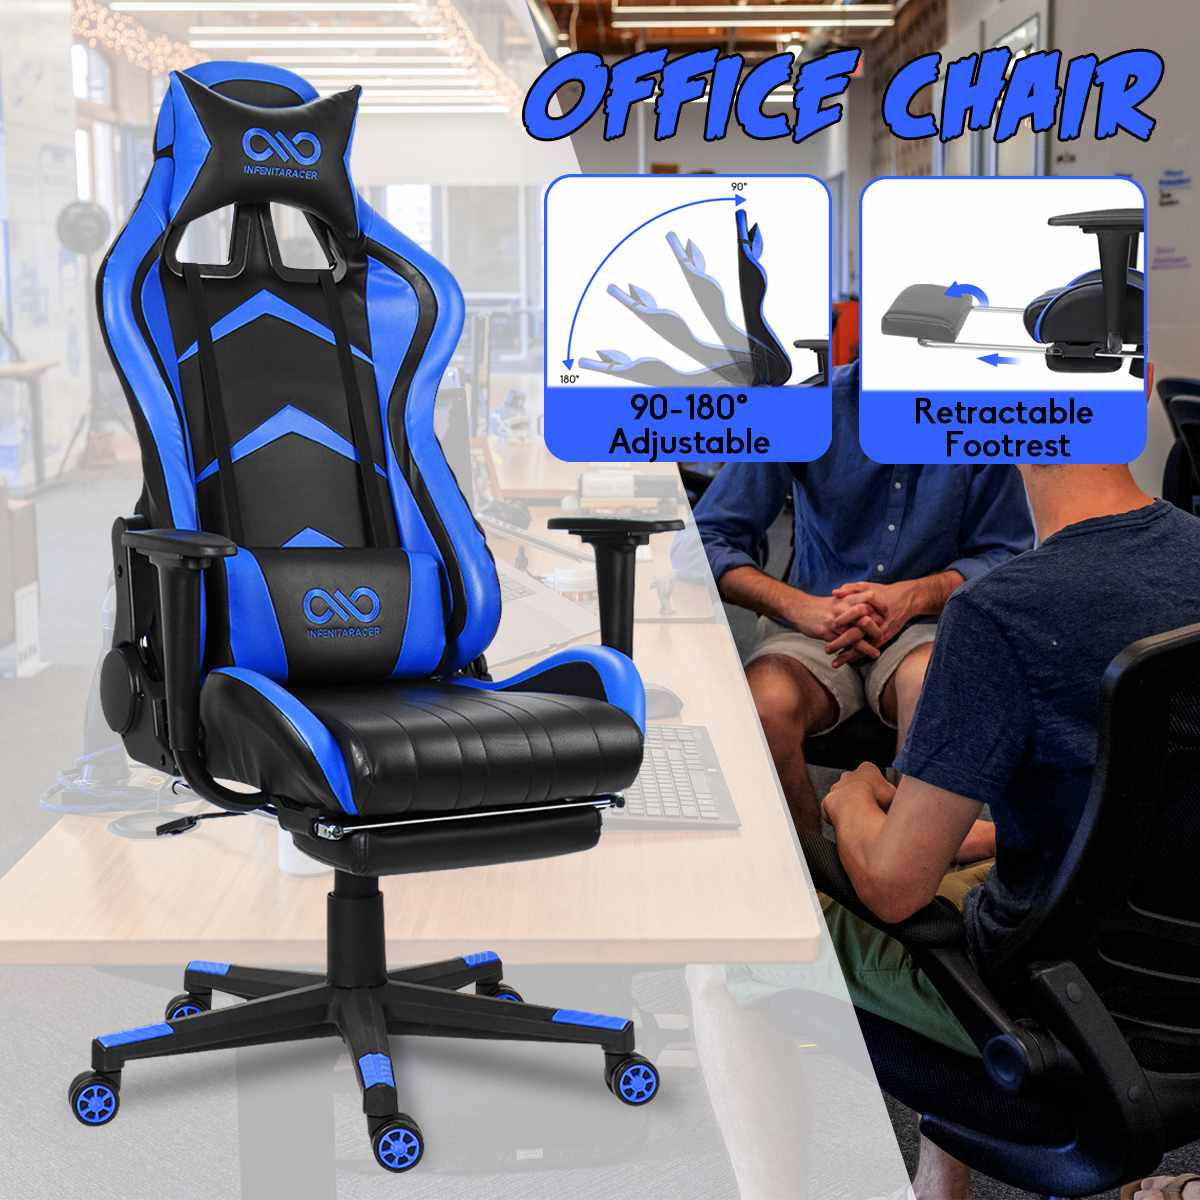 H61ab07c9ad29493685fff8f531507a392 - WCG Gaming Chair Computer Armchair Office Chairs Home Swivel Massage Chair Lifting Adjustable Desk Chair Lying Recliner Chair